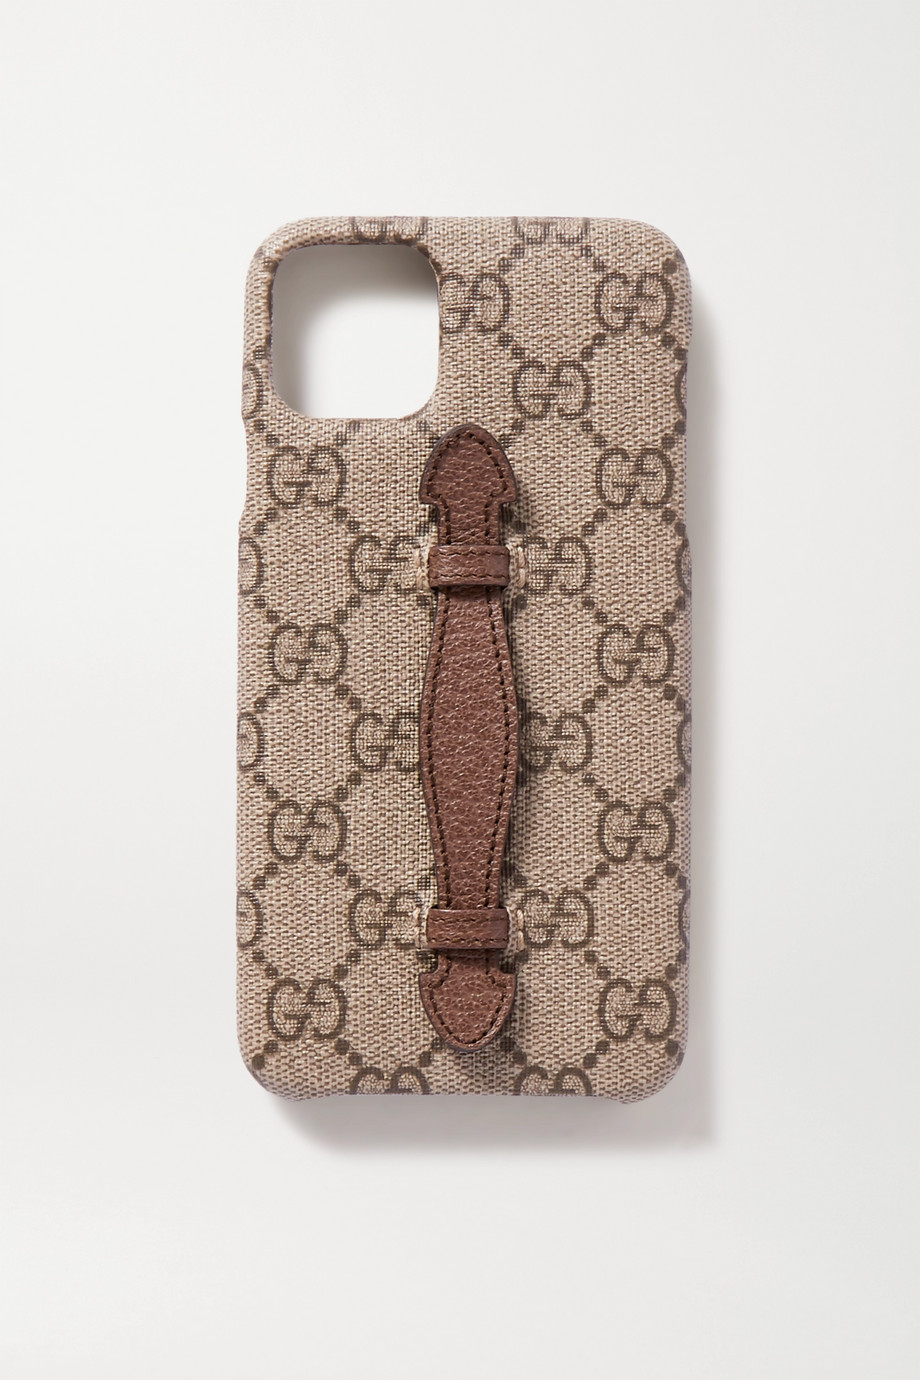 Gucci Textured leather-trimmed printed coated-canvas iPhone 11 Pro Max case